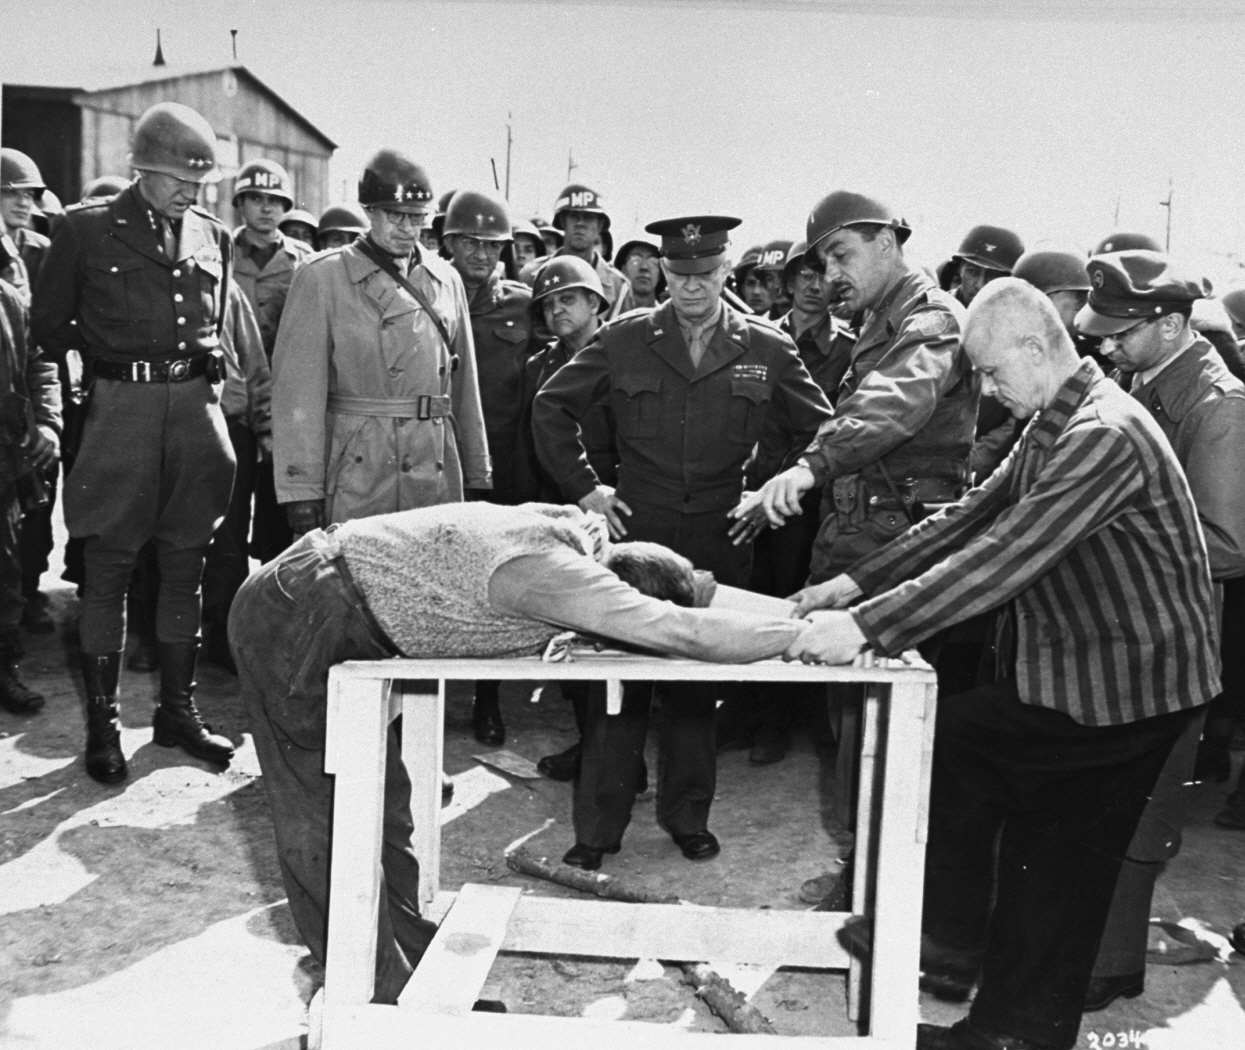 the schutzstaffel and death camps Ss-totenkopfverbände (ss-tv), rendered in english as death's-head units, was the ss organization responsible for administering the nazi concentration camps for the third reich.